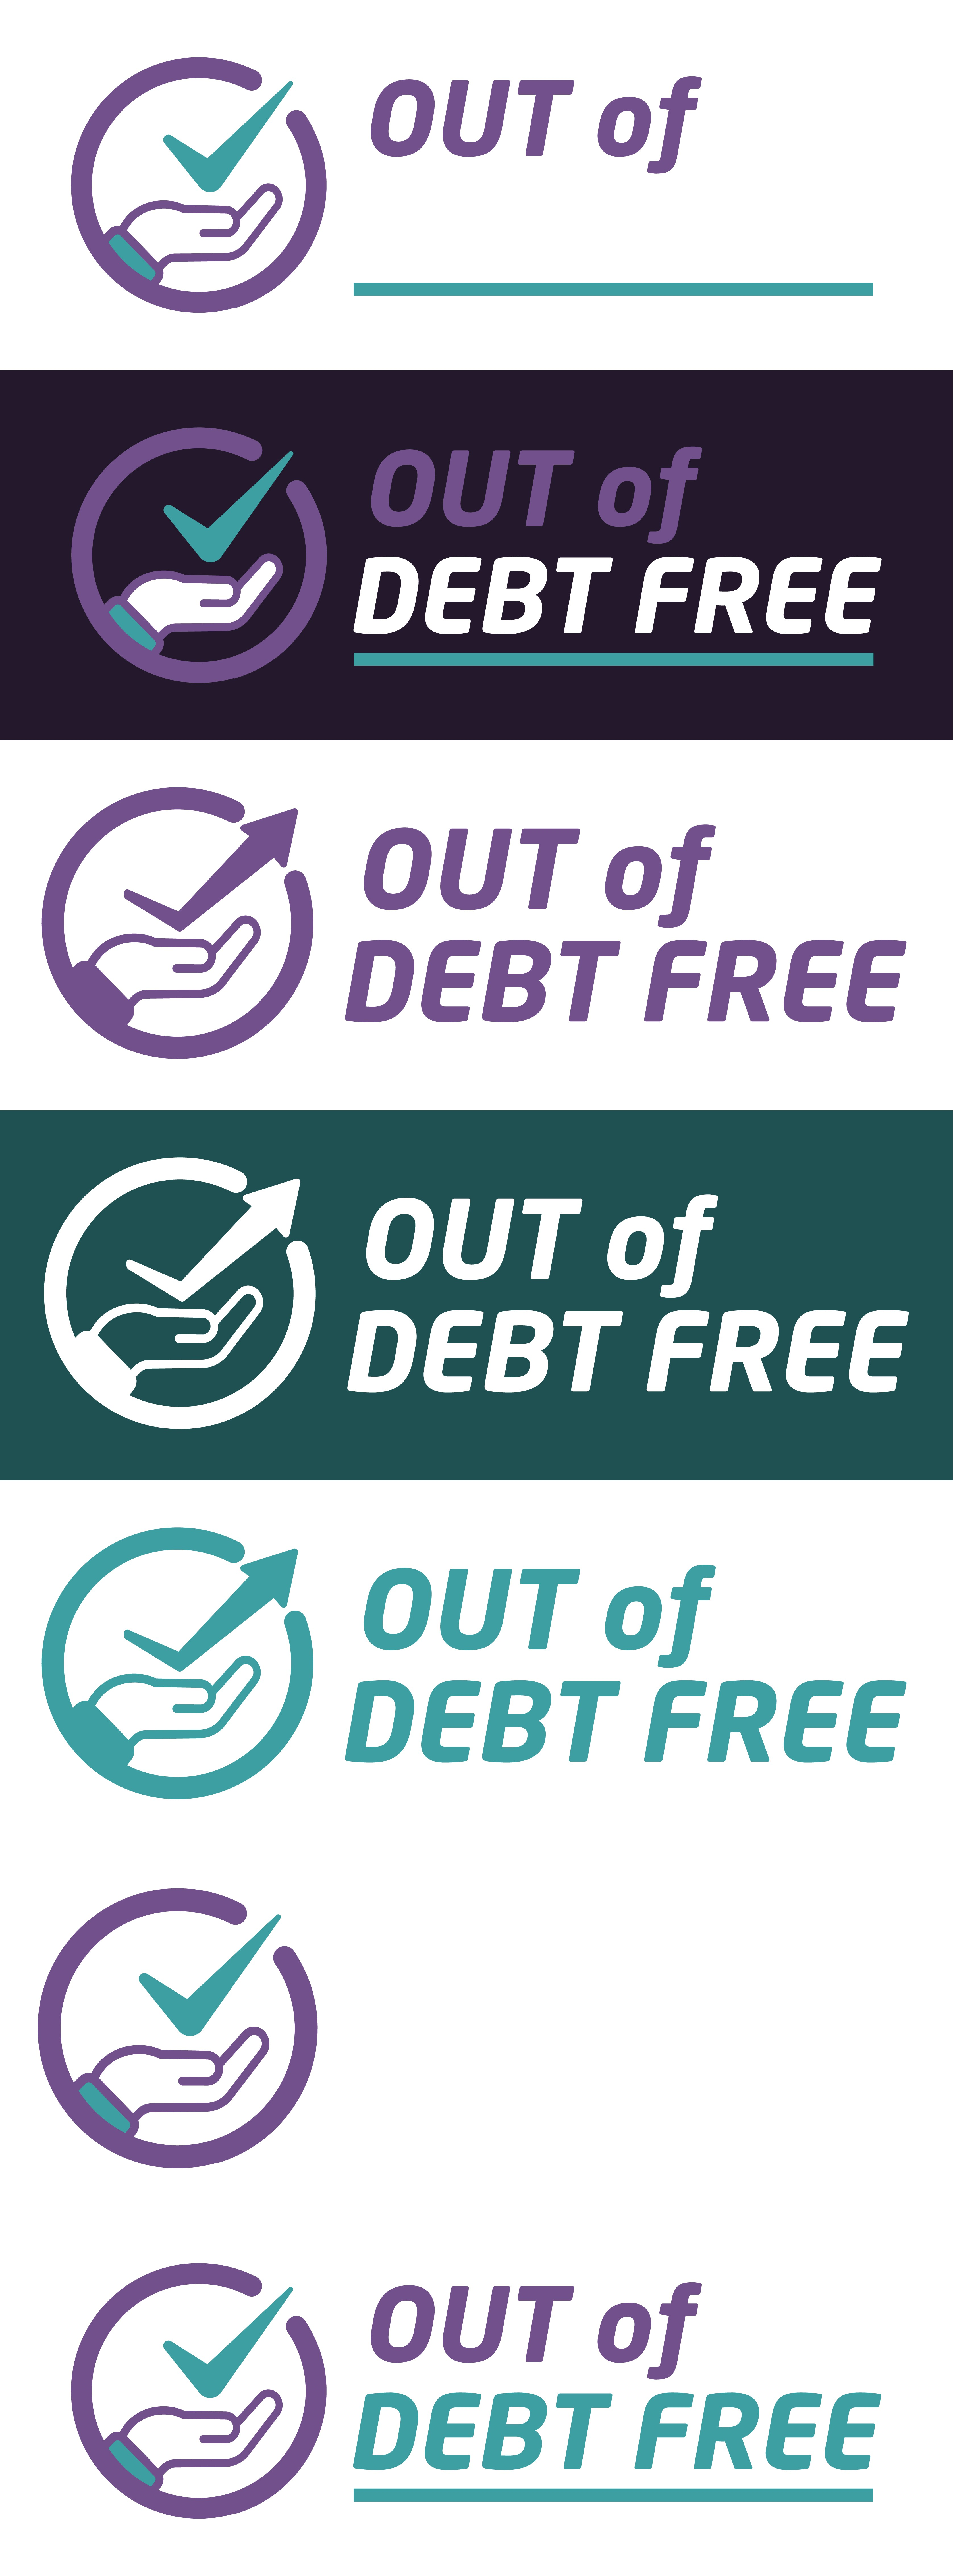 GET ME OUT OF DEBT!